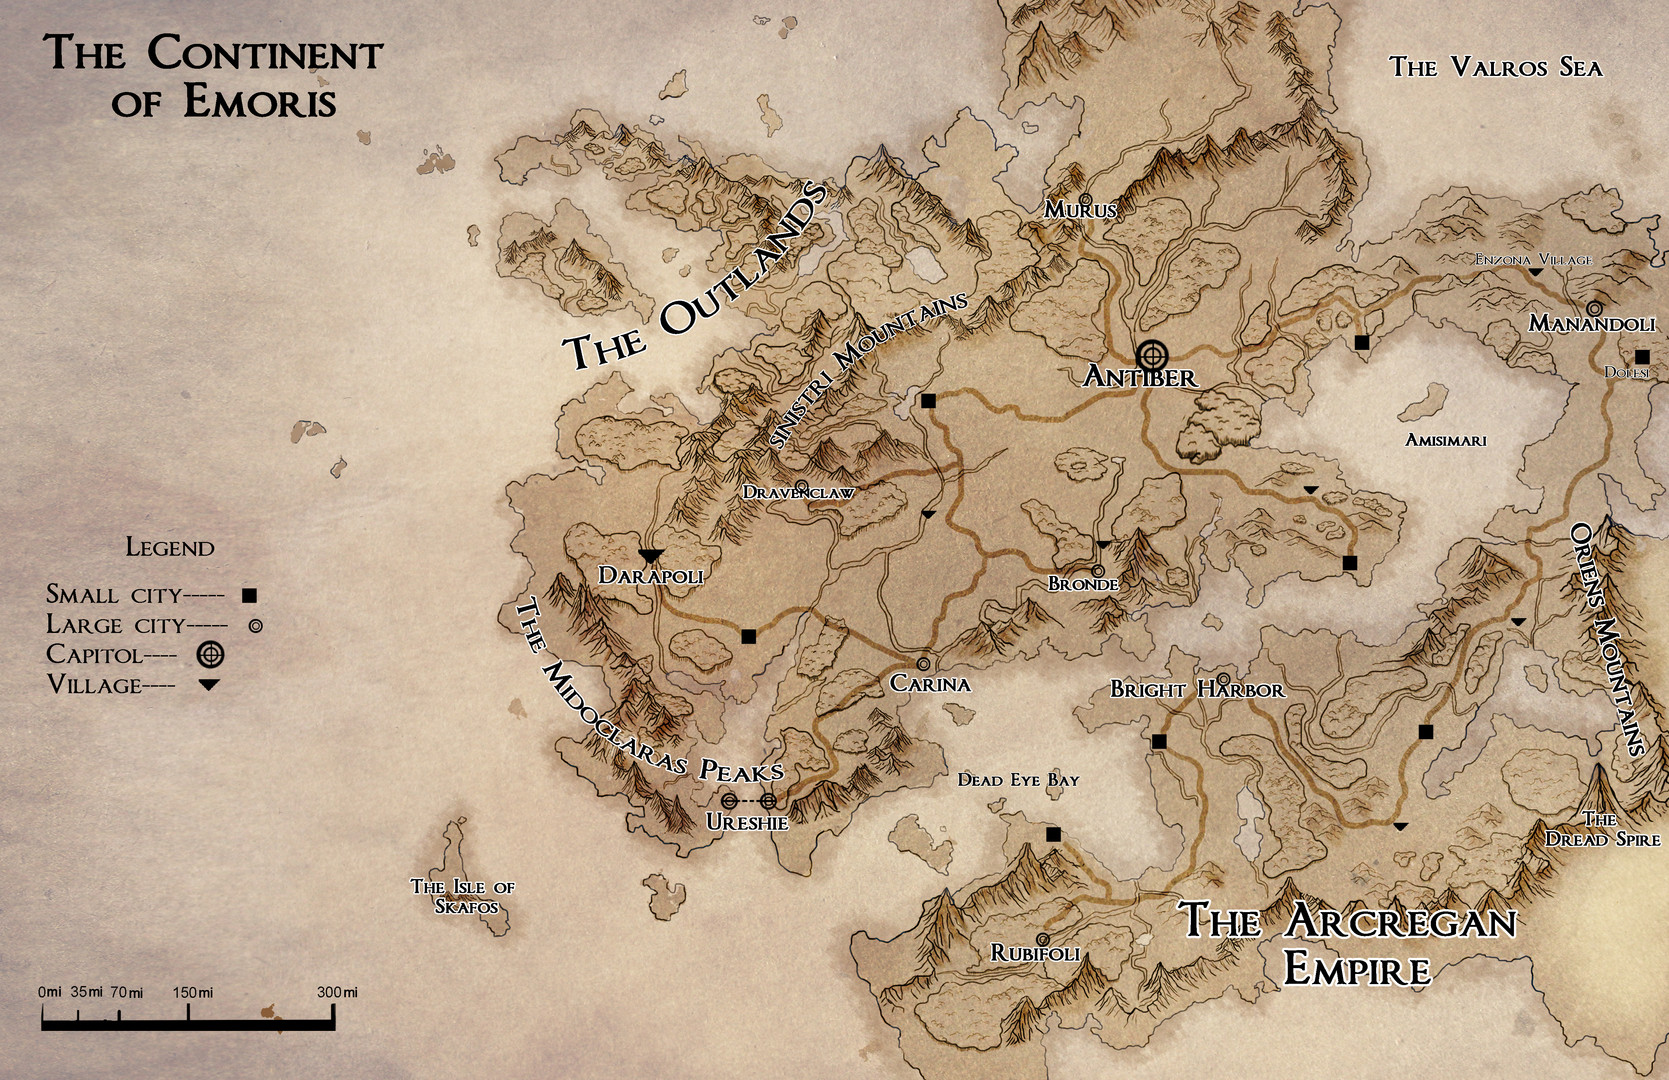 The Continent of Emoris